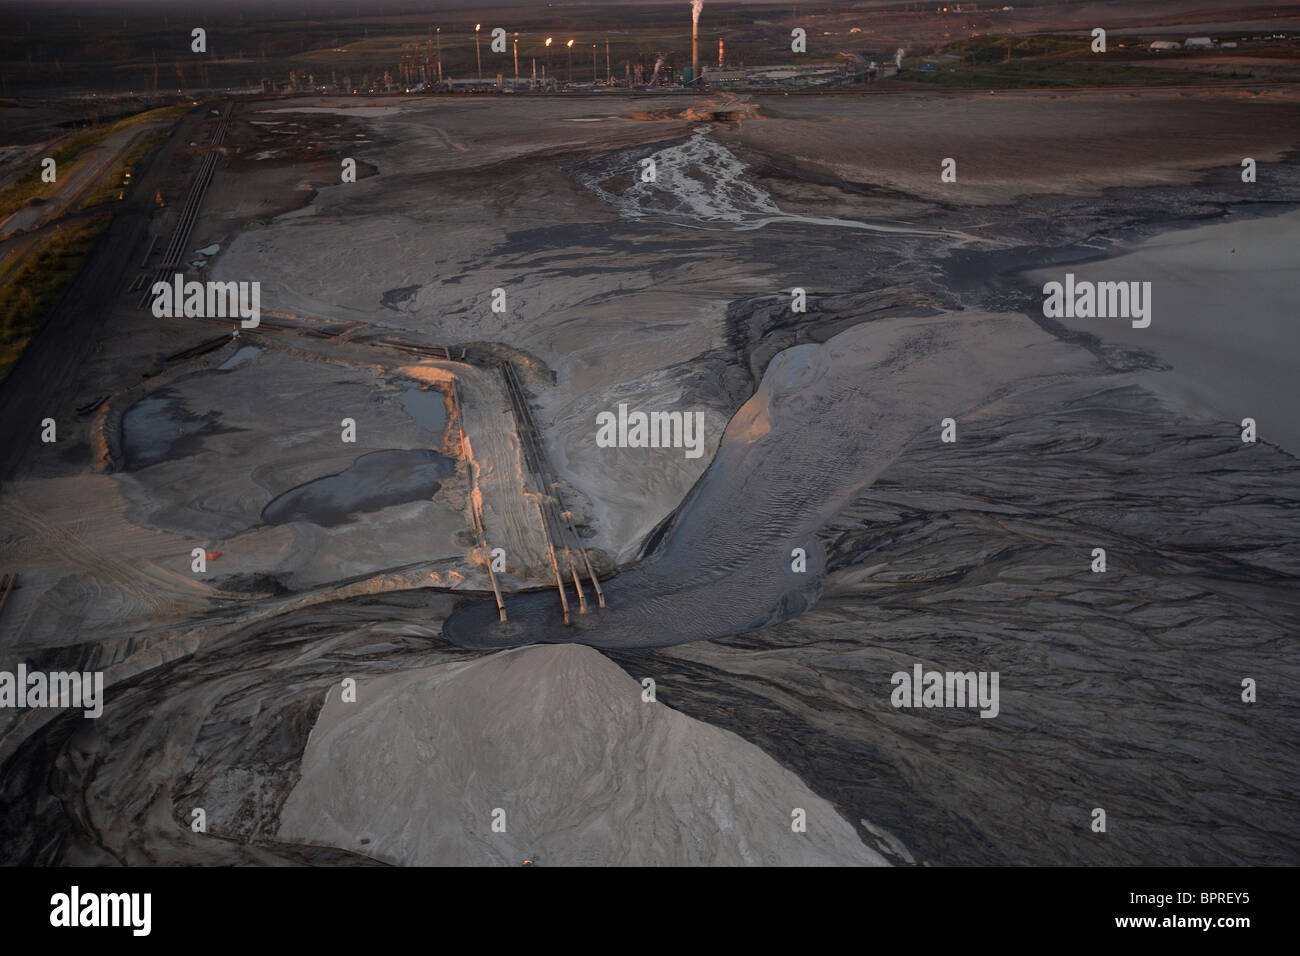 Tailings Pond outflow pipes from the Bitumen Separation Plant, Suncor Millenium oil sands mine north of Fort McMurray, - Stock Image